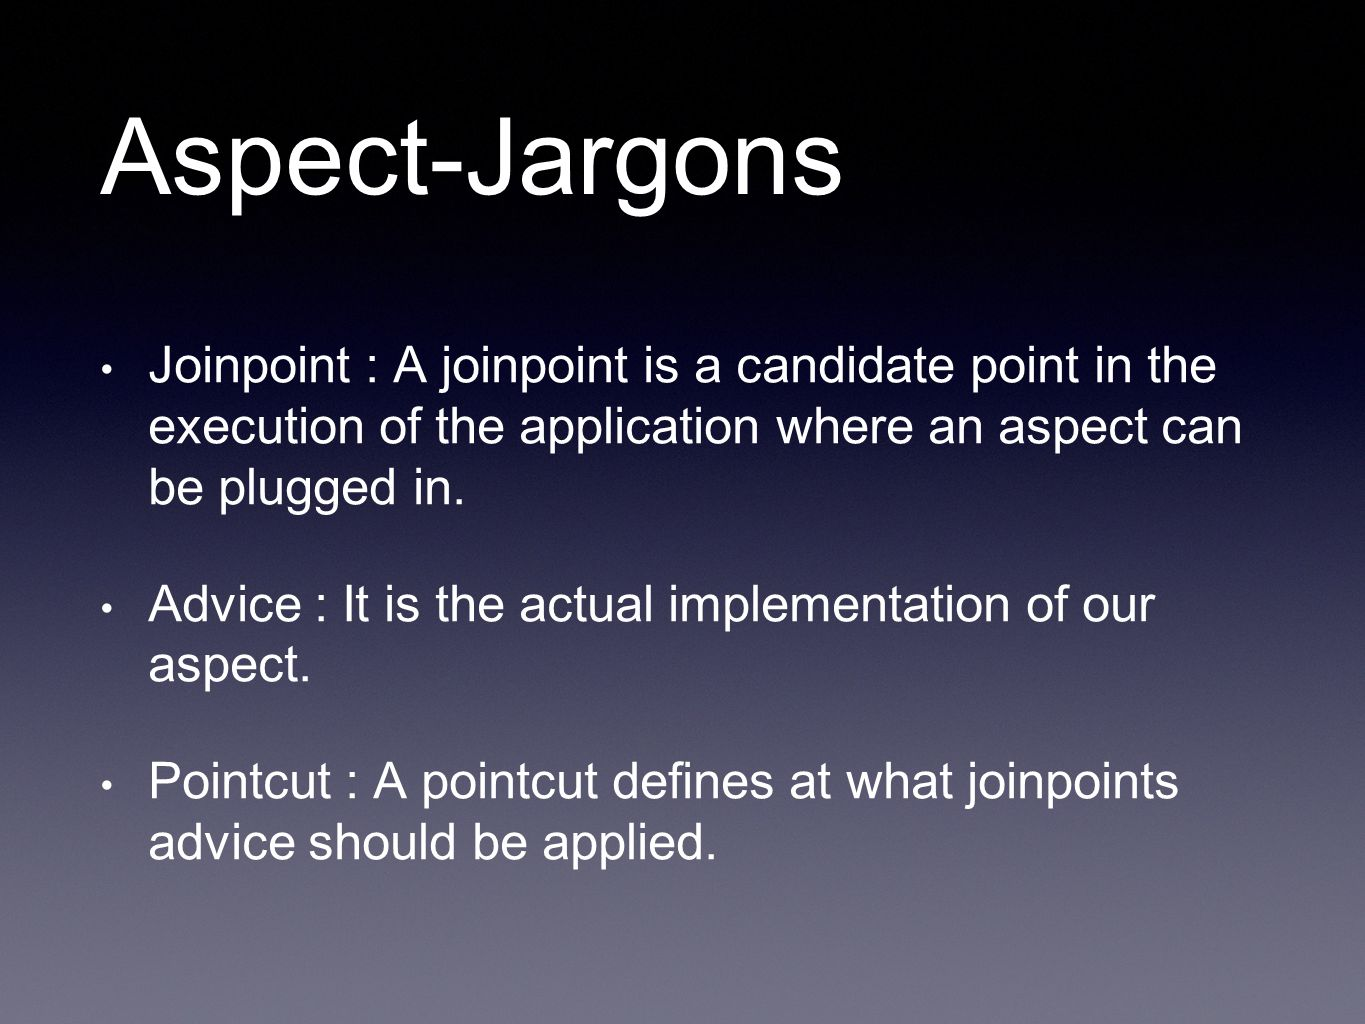 Aspect-Jargons Joinpoint : A joinpoint is a candidate point in the execution of the application where an aspect can be plugged in. Advice : It is the